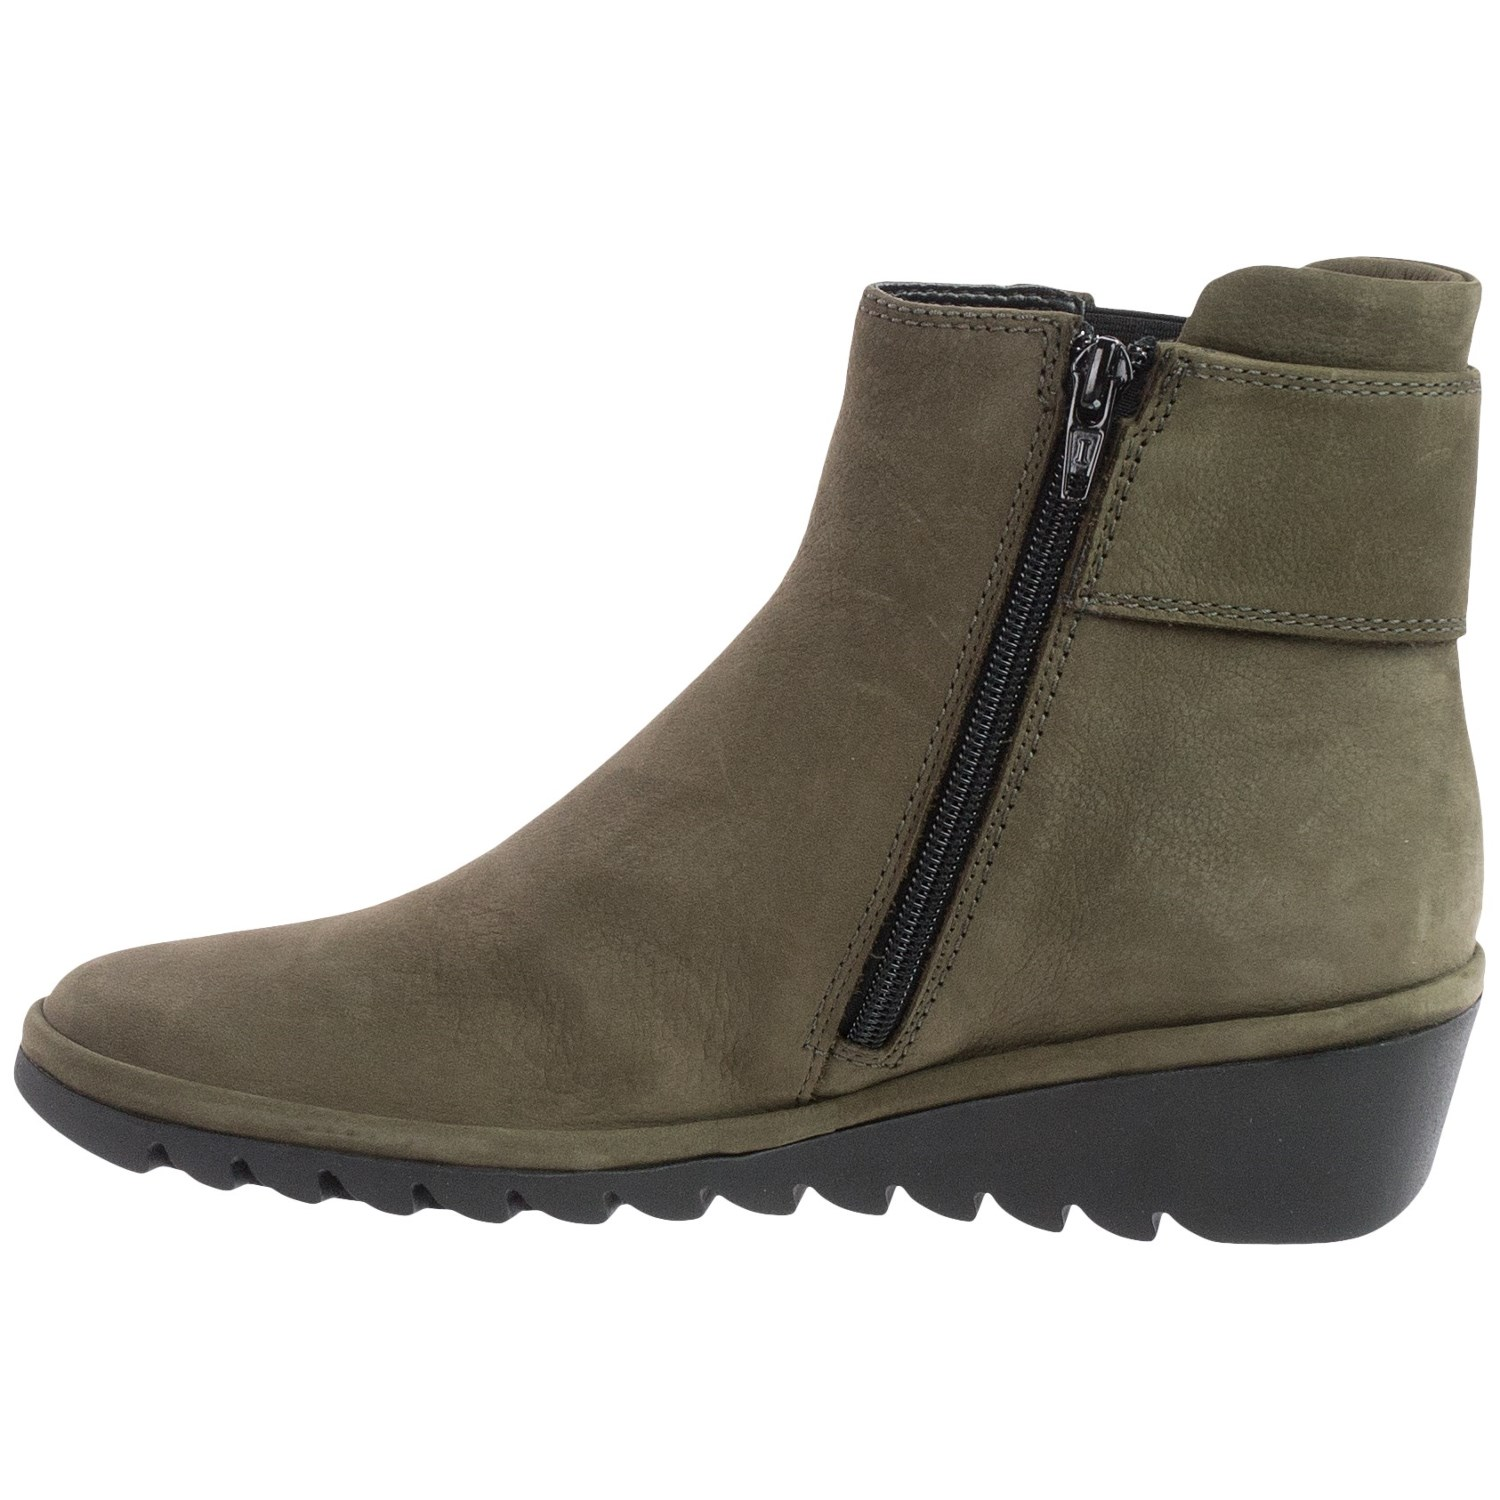 The Flexx Malificent Suede Boots (For Women) - Save 66%